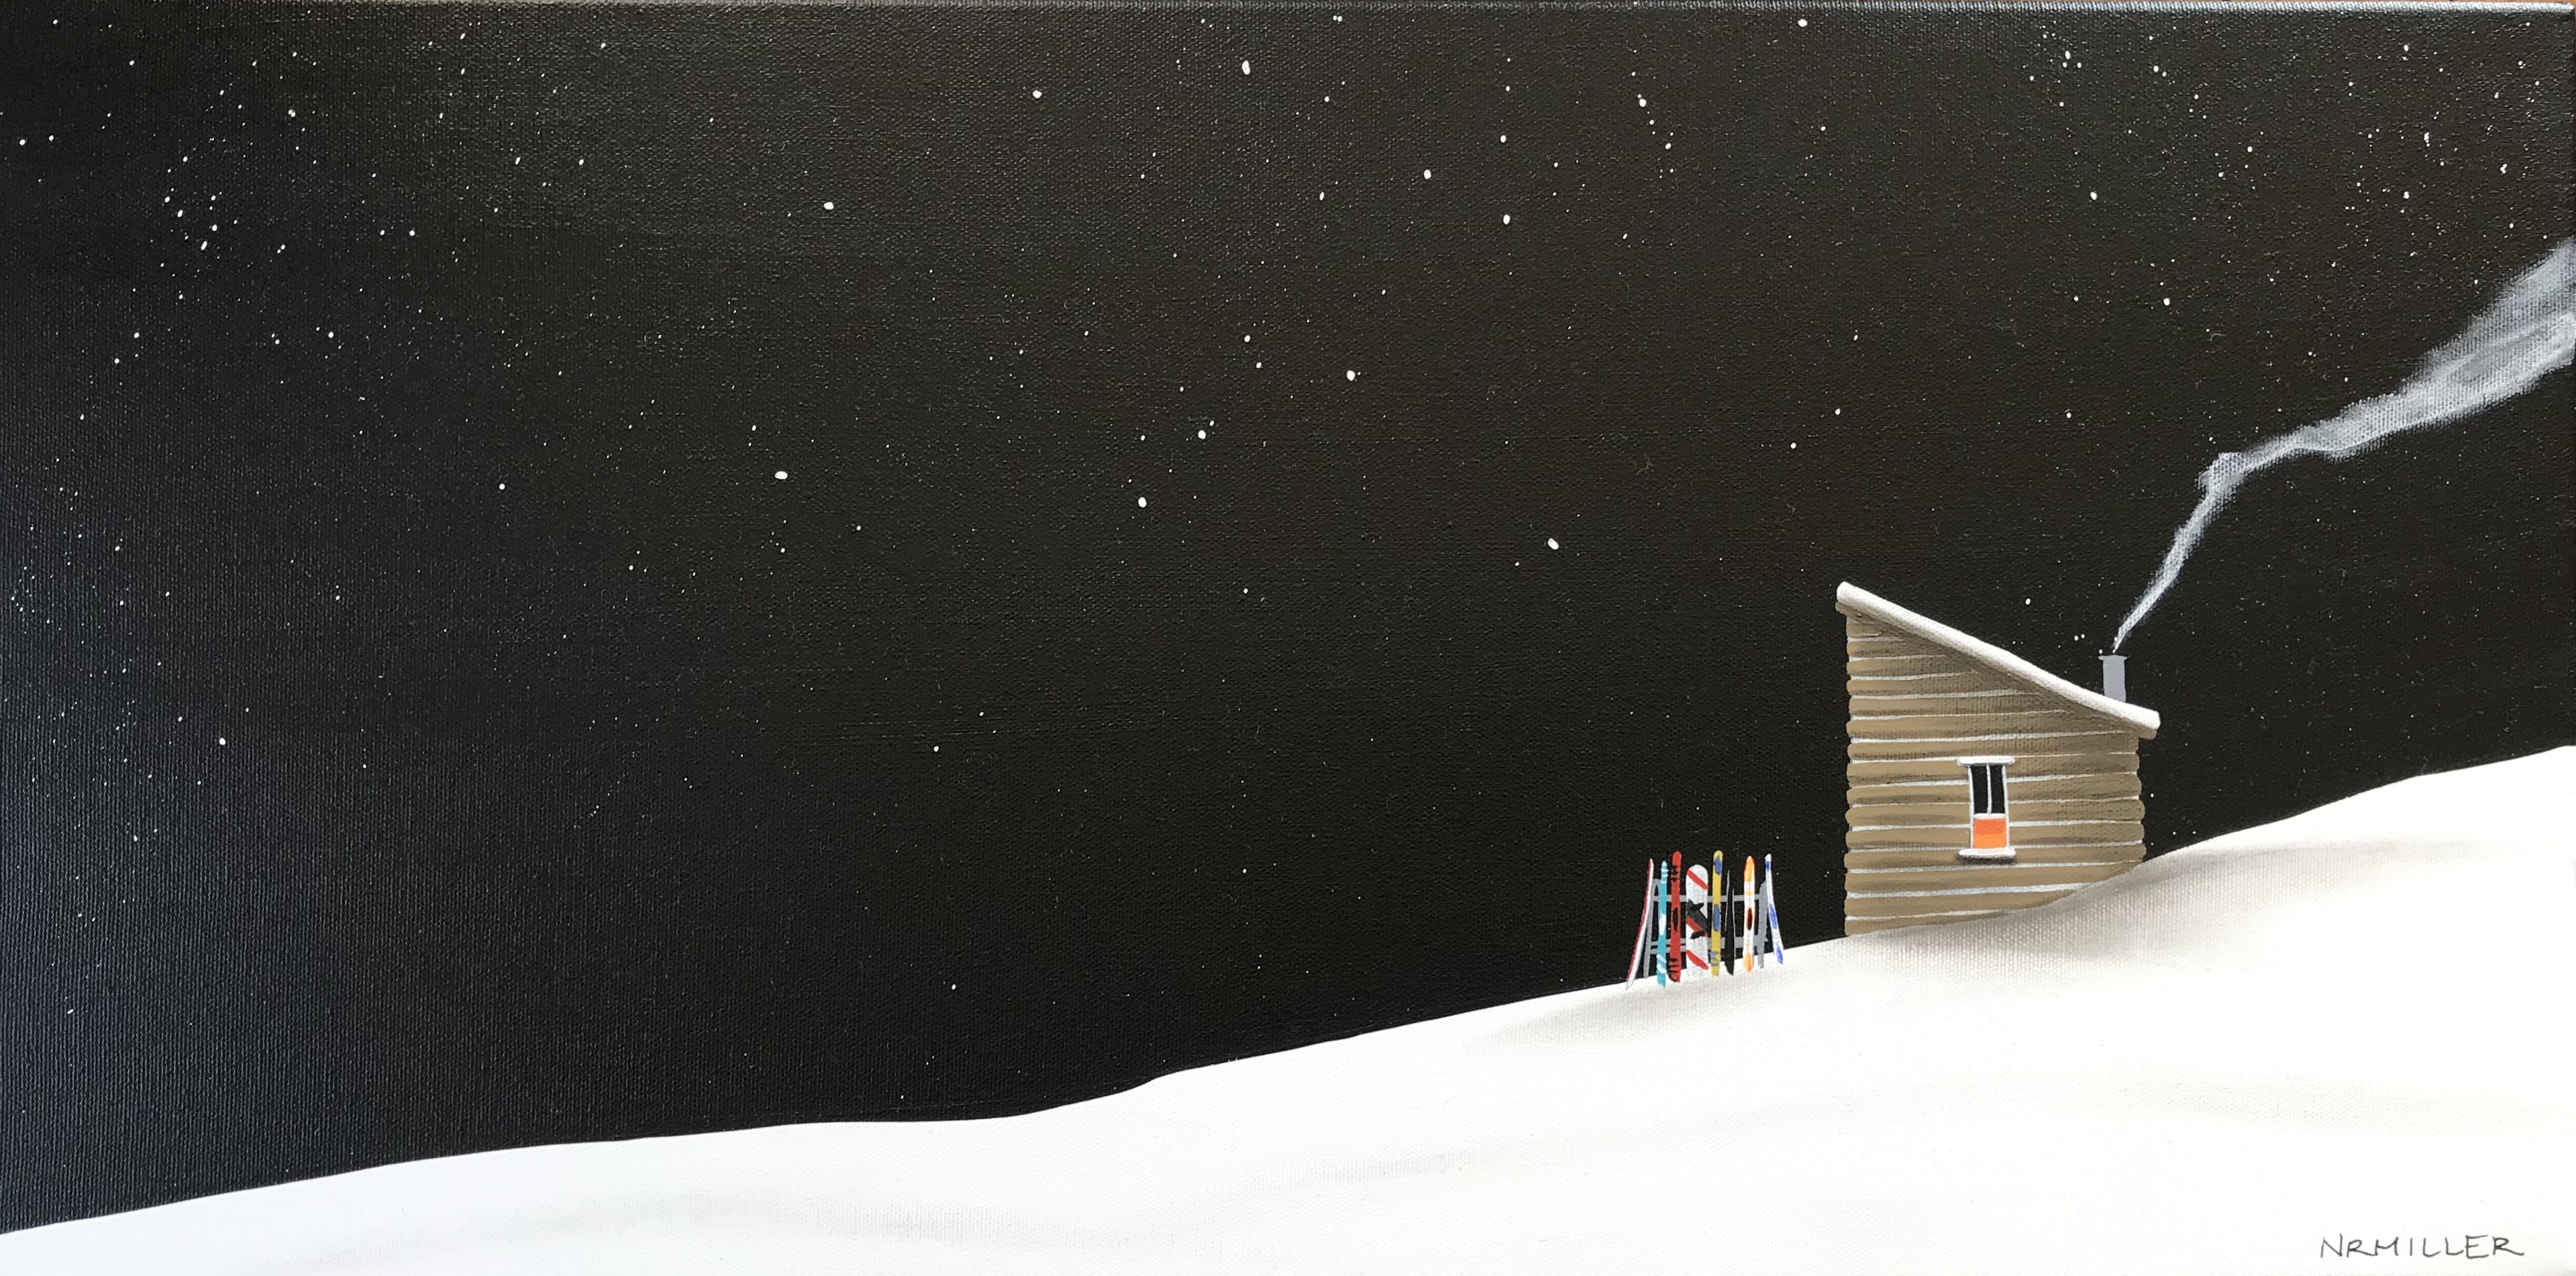 That's All She Wrote, mixed media ski chalet painting by Natasha Miller   Effusion Art Gallery + Cast Glass Studio, Invermere BC